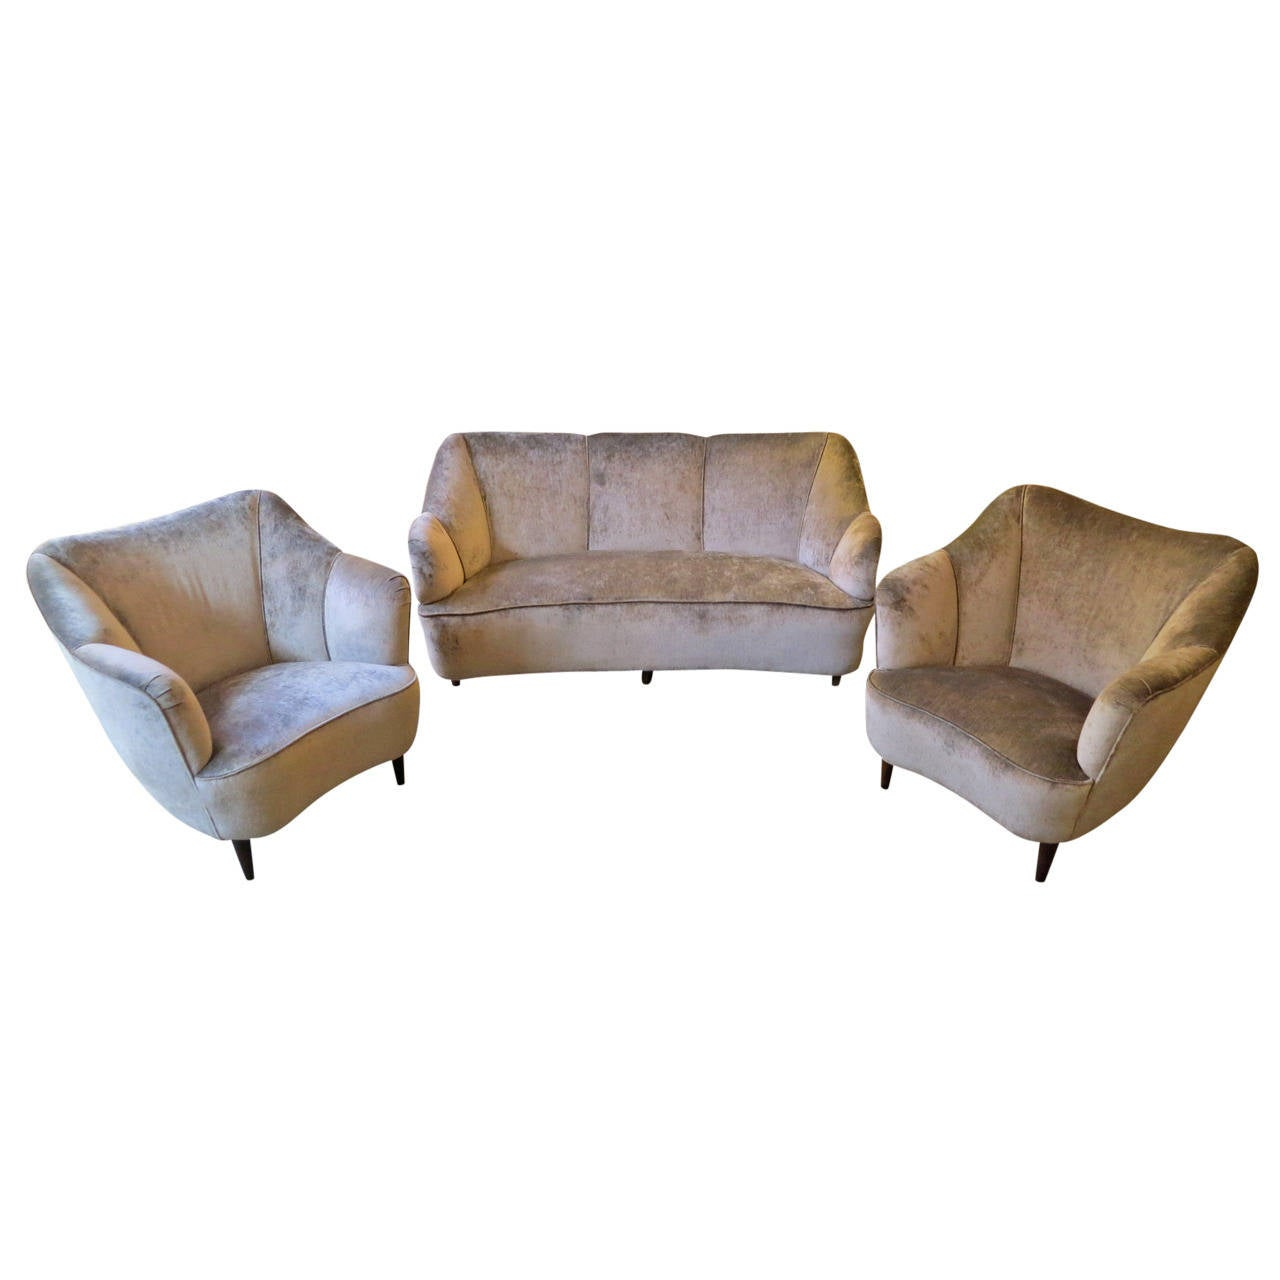 Italian 1950s Salon Suite with Curved Sofa and Armchair Set 1